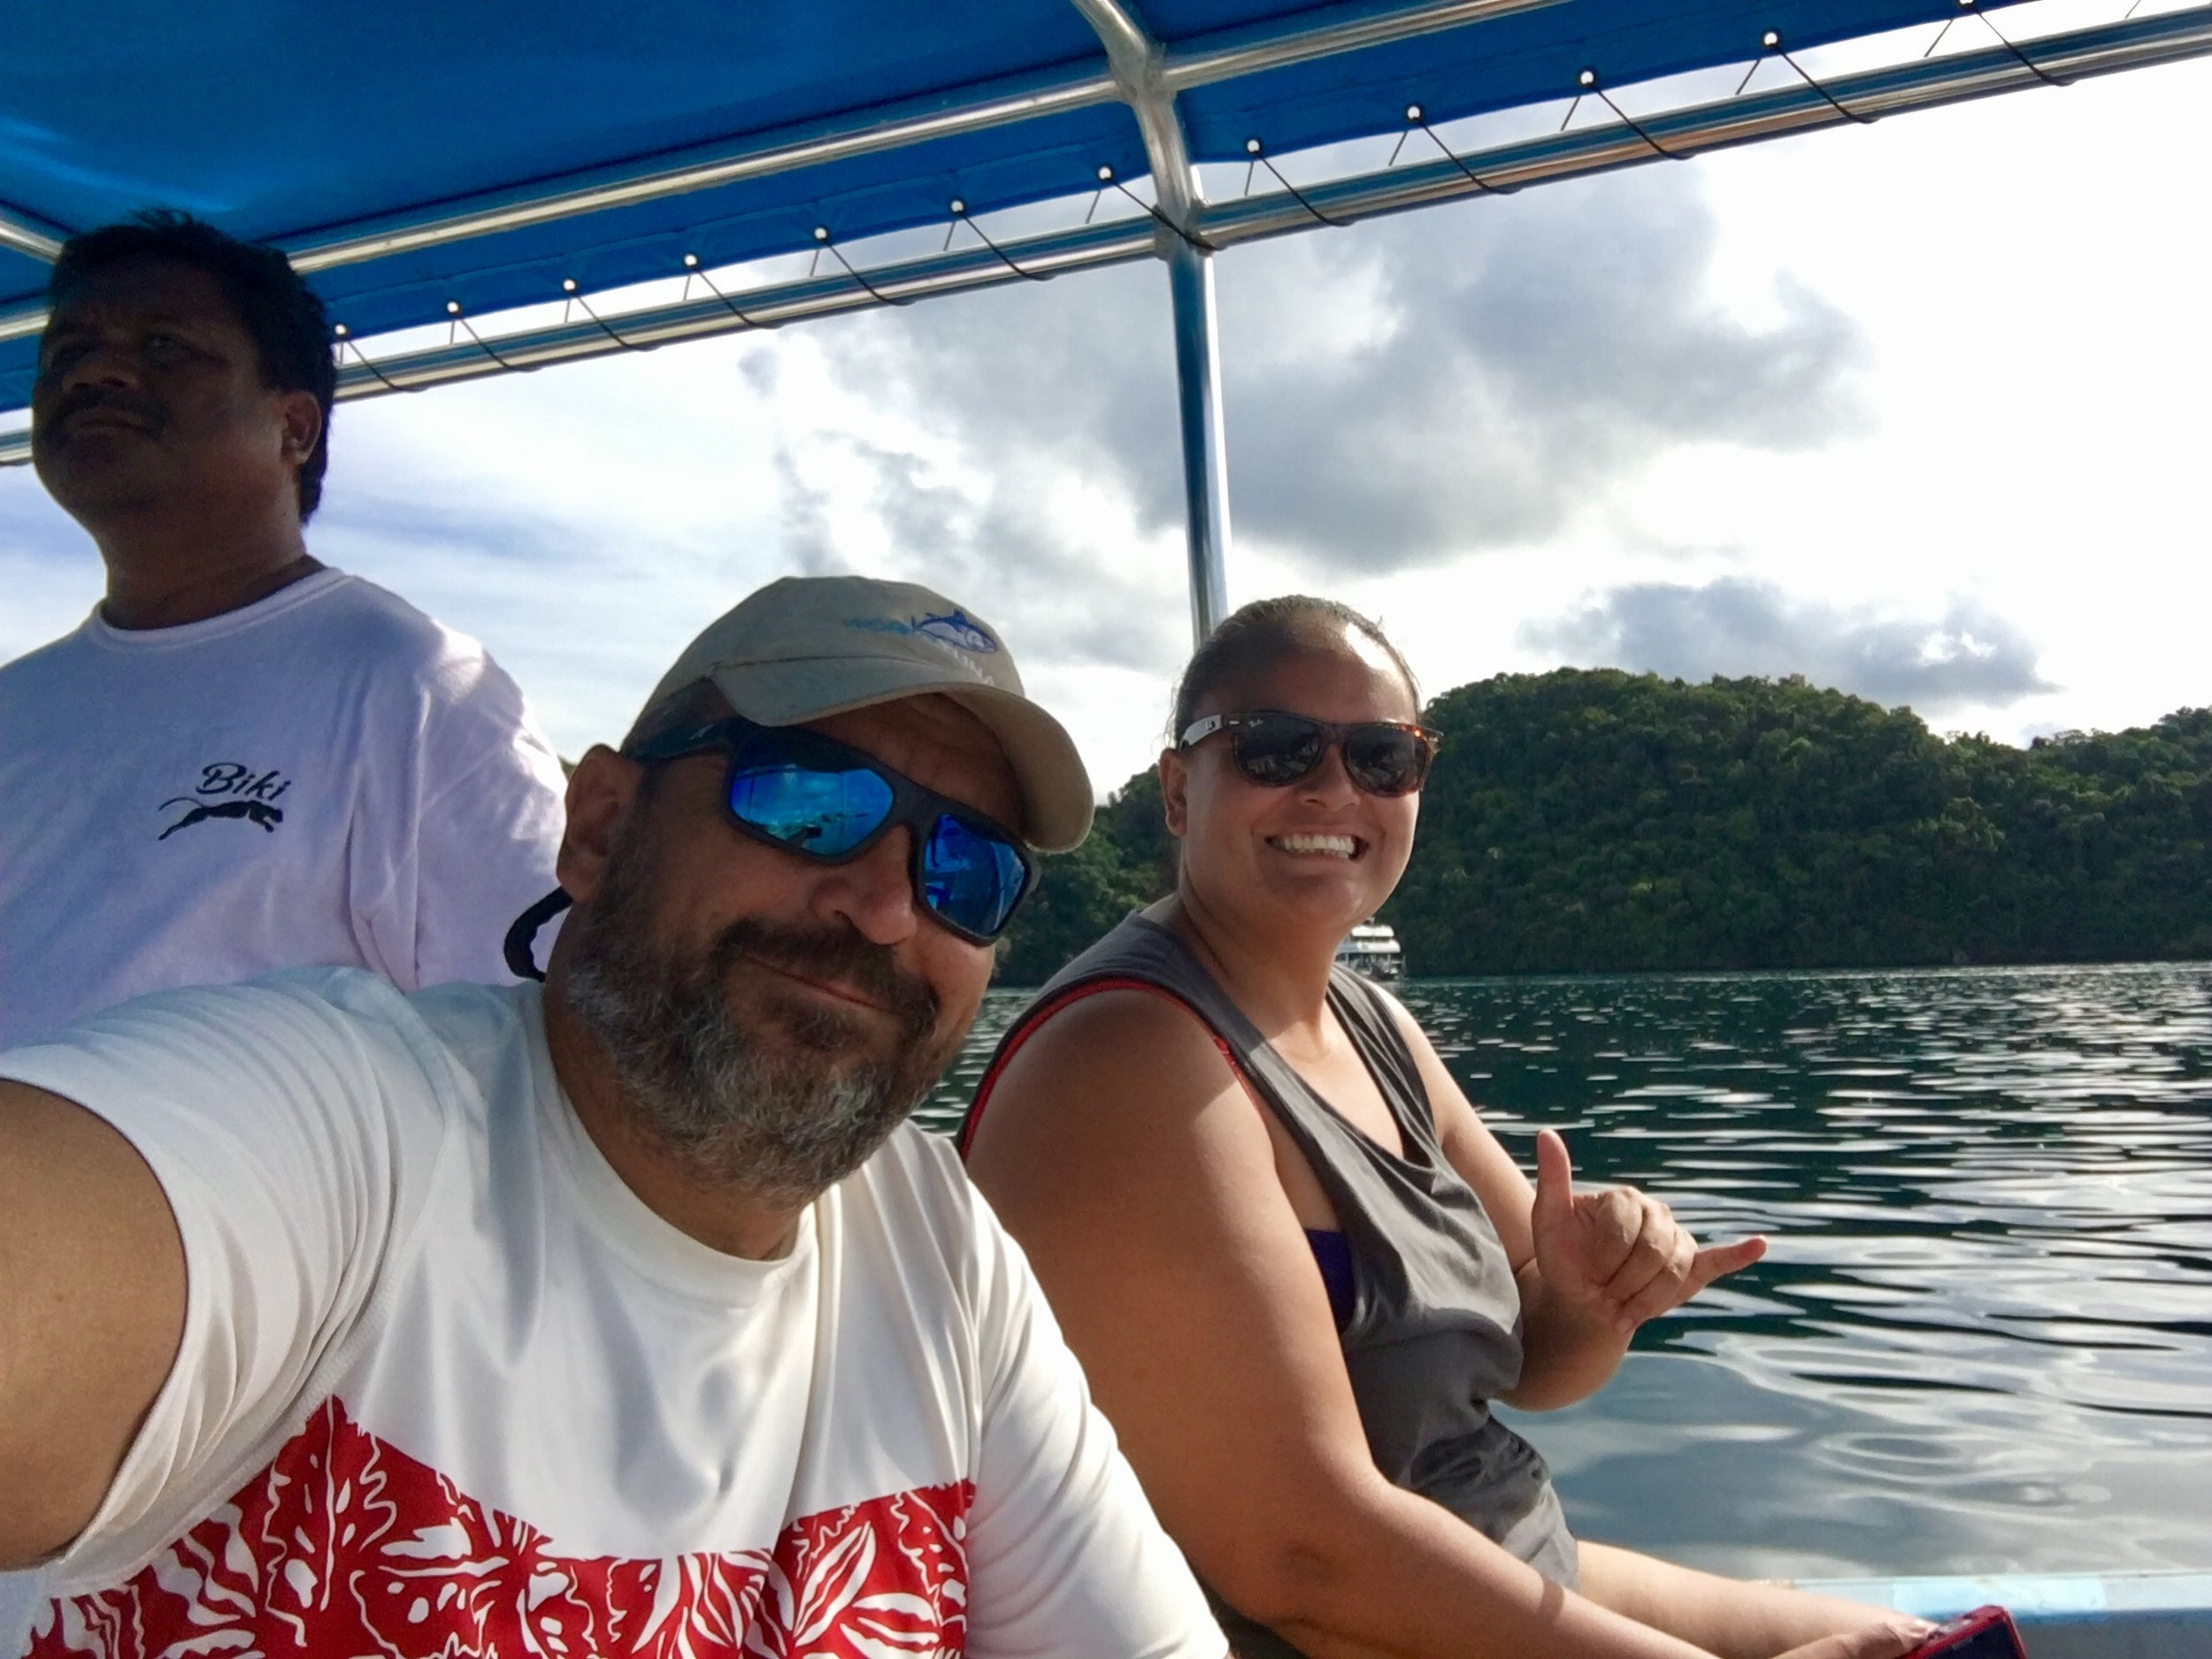 Working (yea for real) in Palau